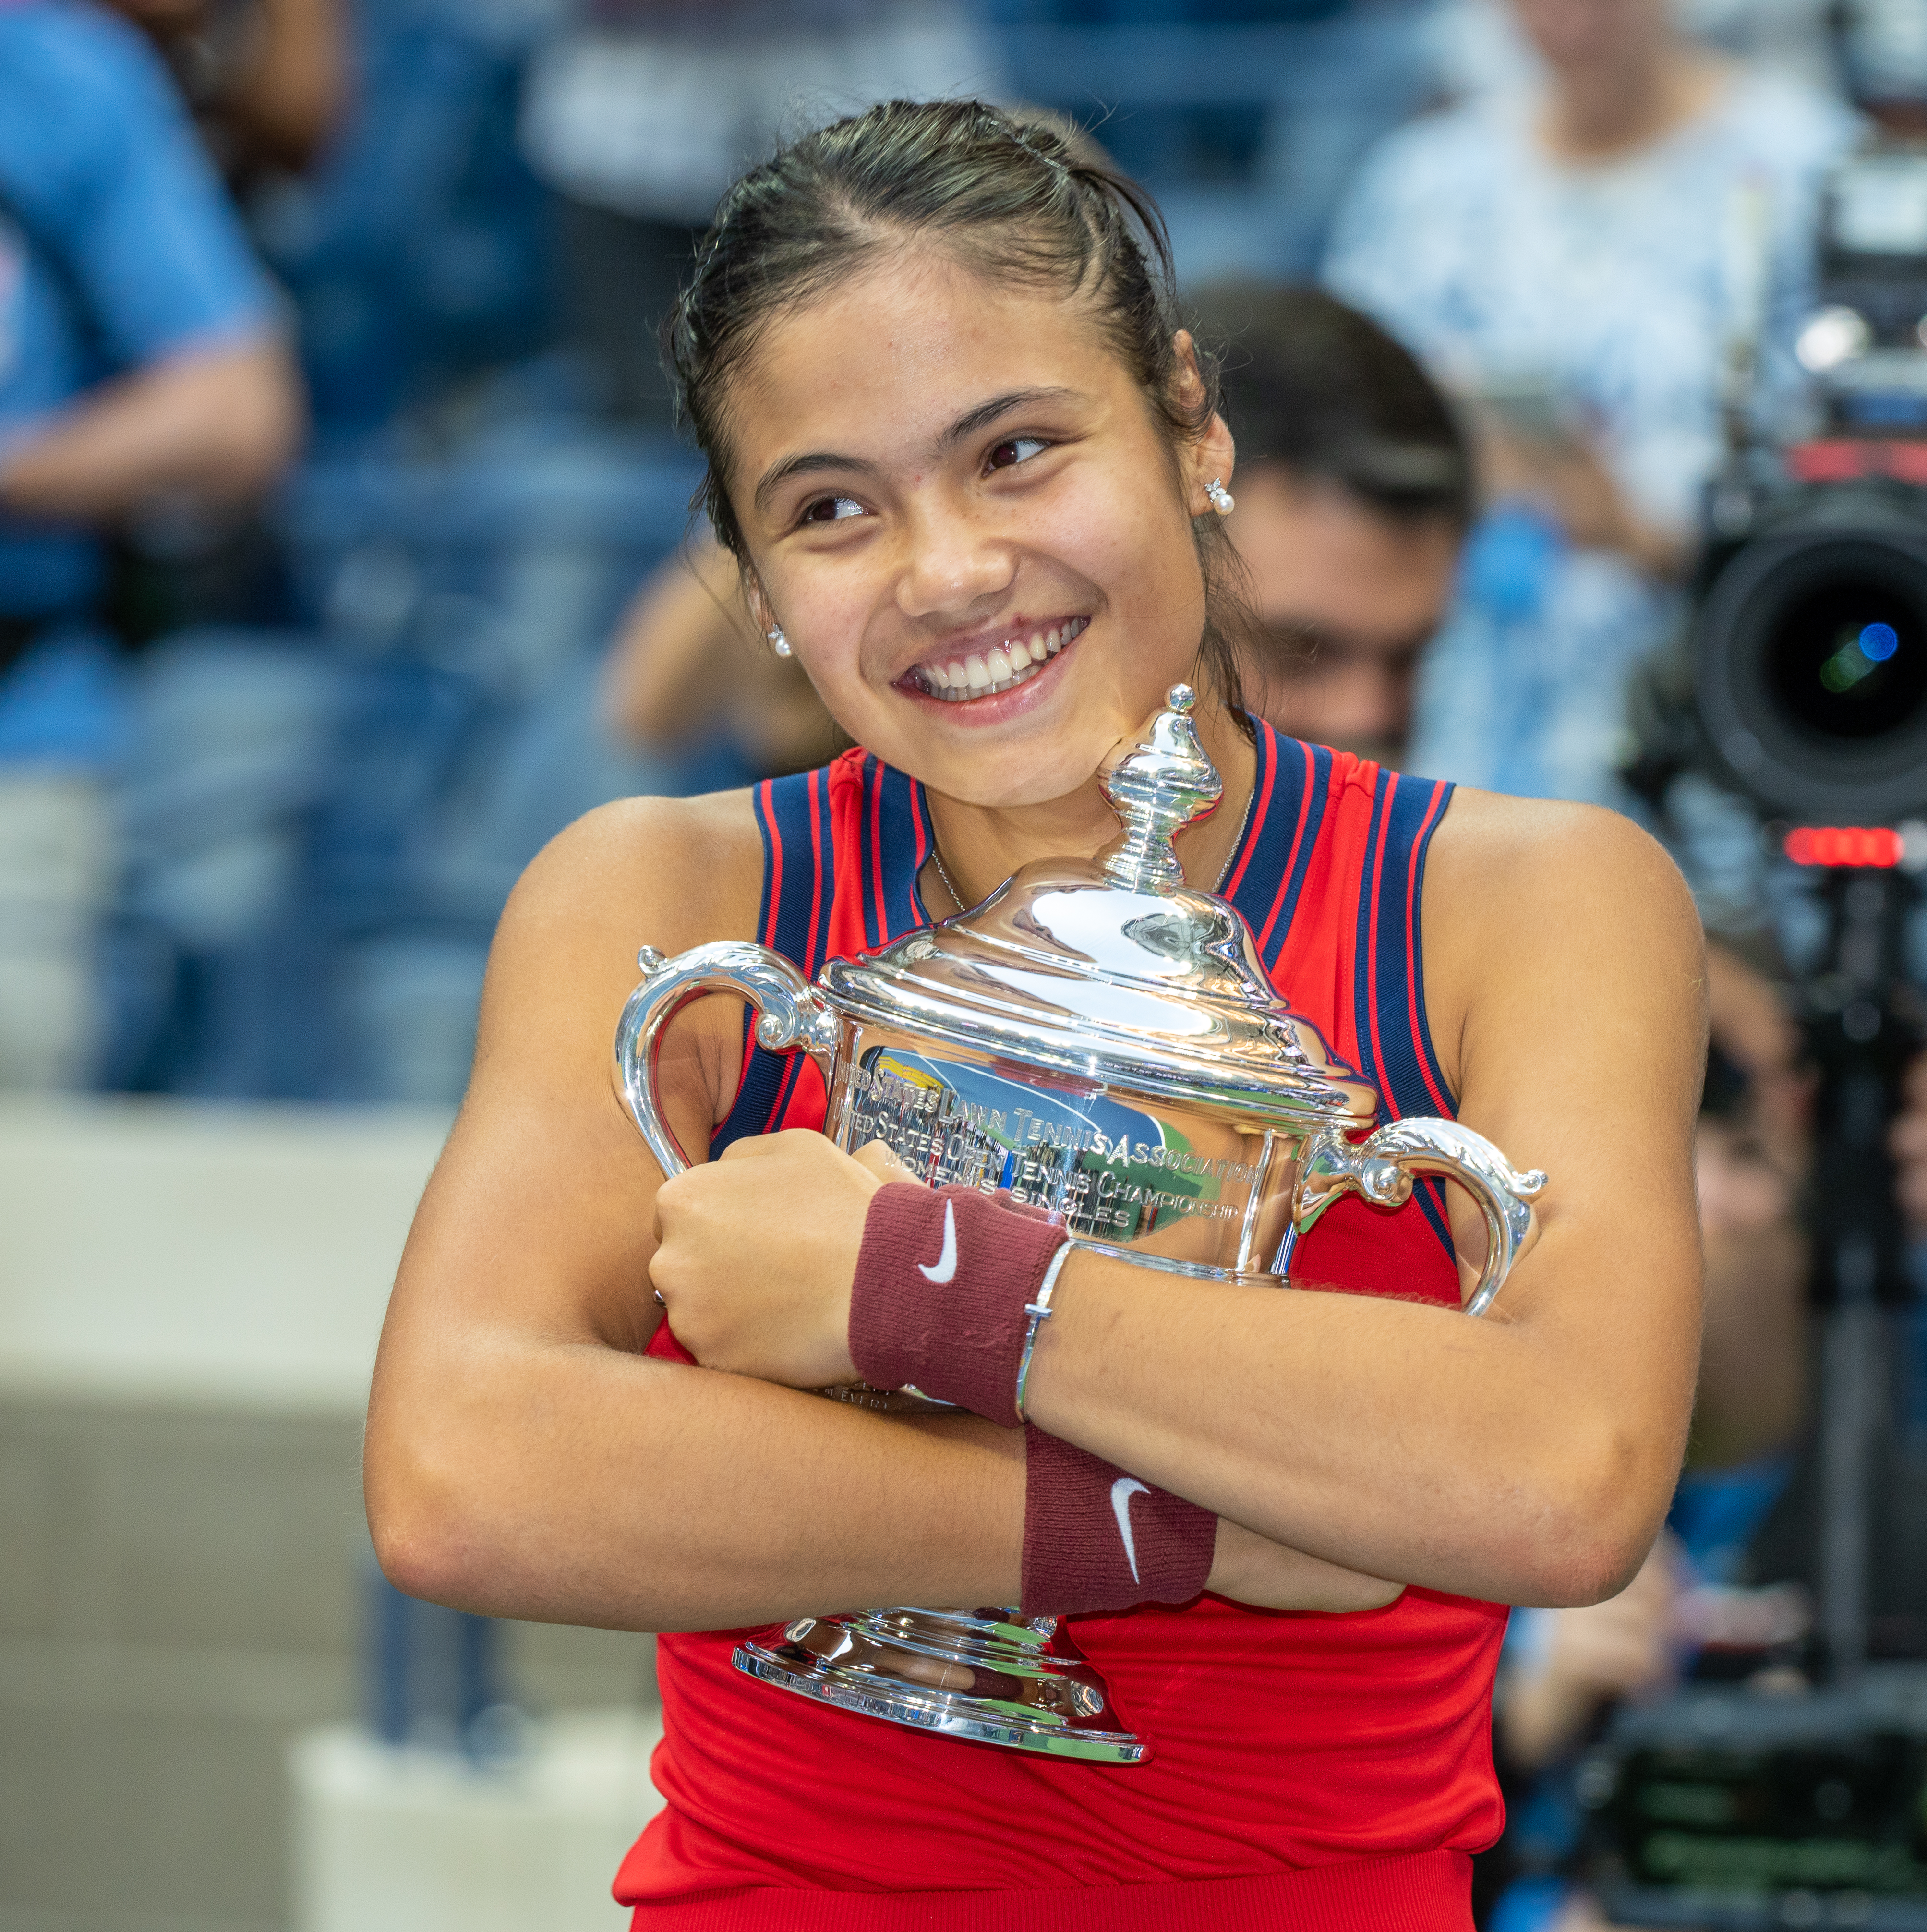 Tennis champion Emma Raducanu hugging her trophy in disbelief after defeating Leylah Fernandez in the women's finals and receiving $2.5 million at the UST,A Billie Jean King Tennis Center in Flushing Meadow Park, in Queens, New York on September 10, 2021.